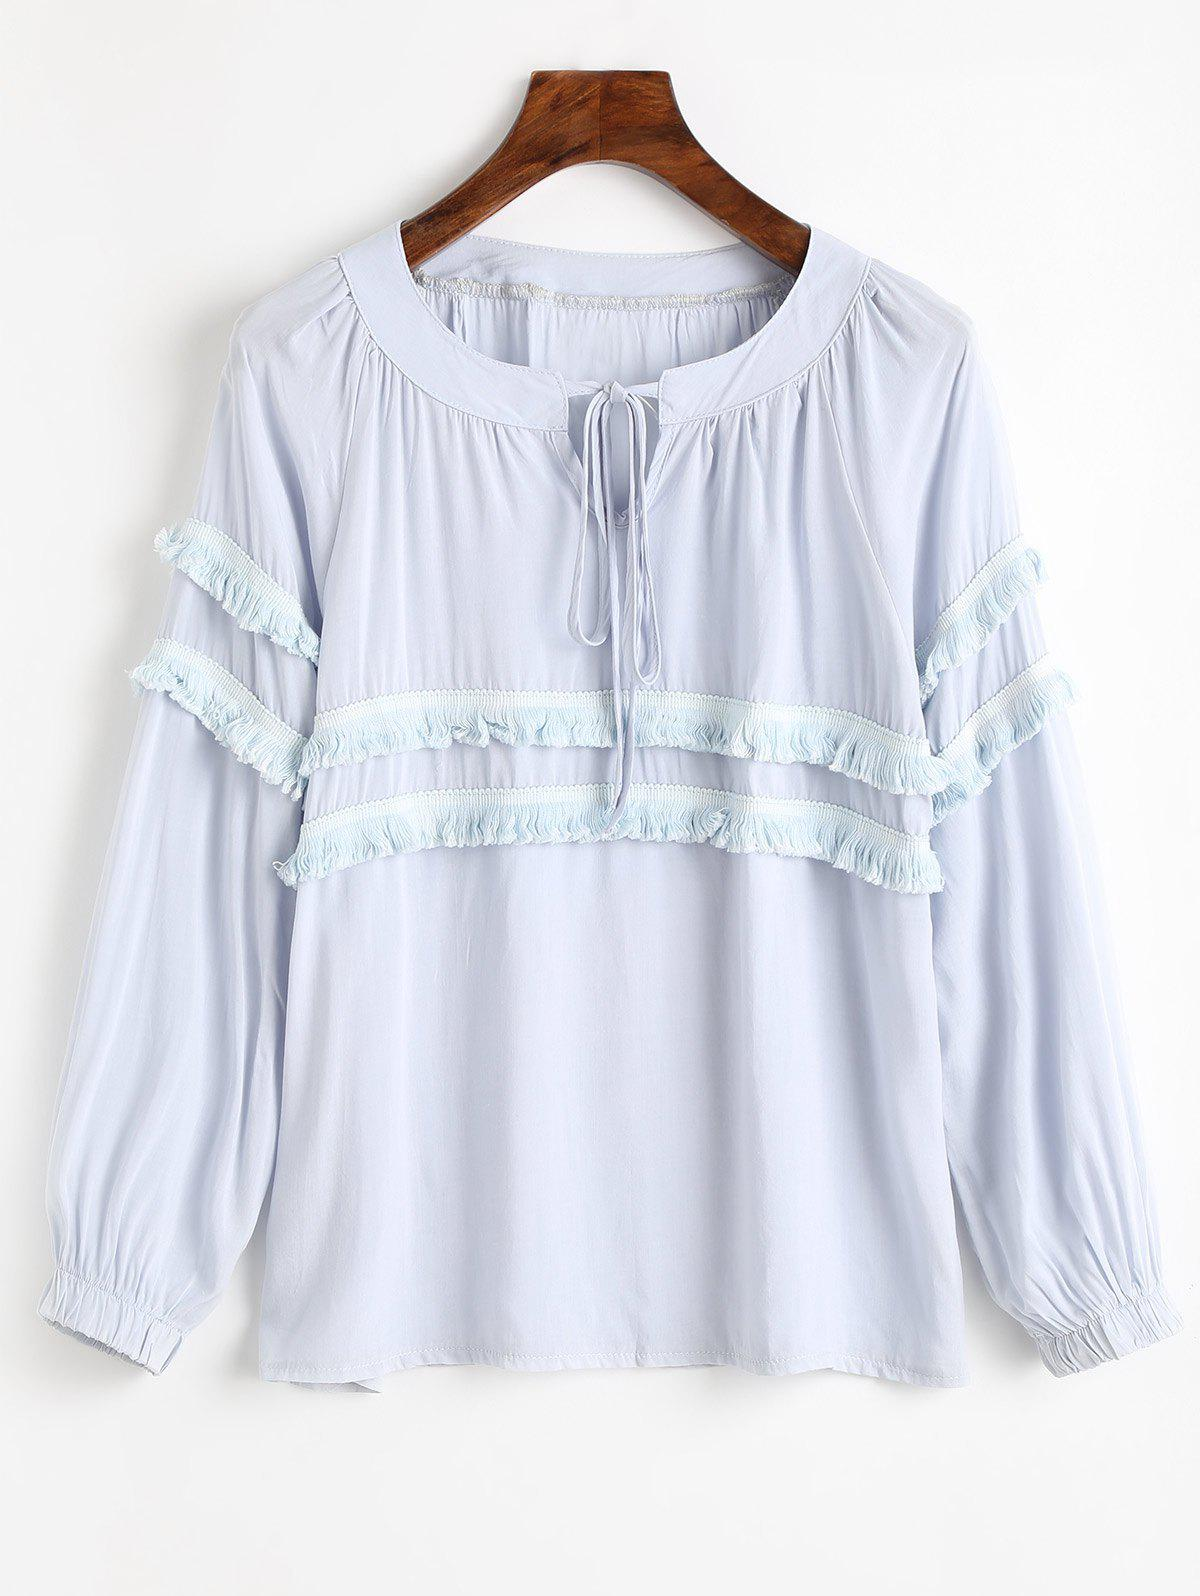 Tassels Embellished Bow Tie Collar Blouse bow tie detail striped blouse